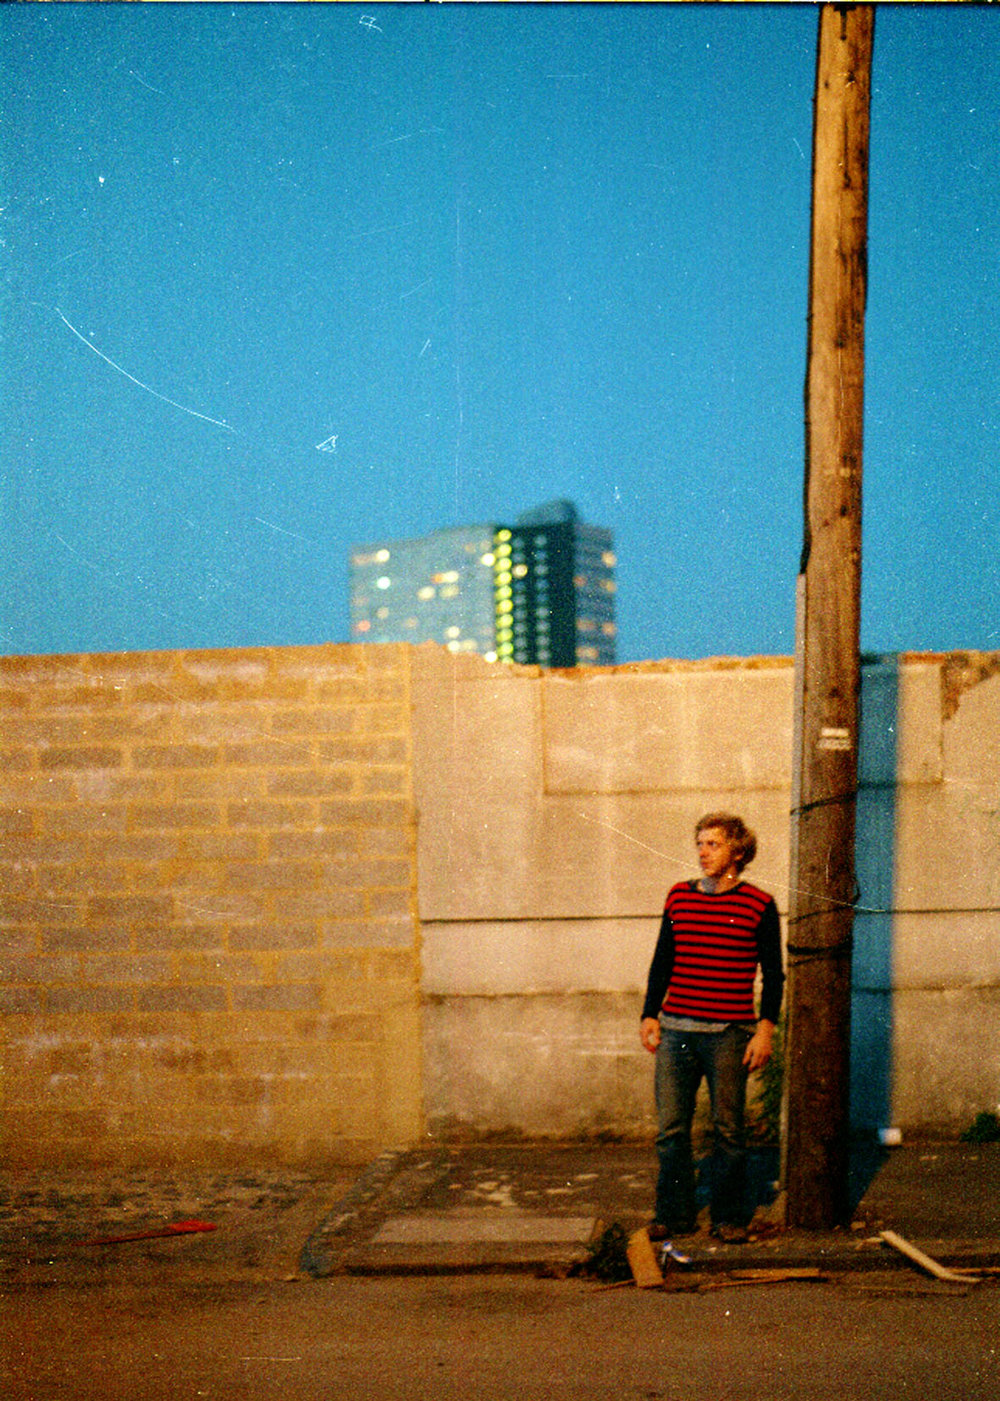 From a series of Night Photographs, Hackney Wick, 2000.